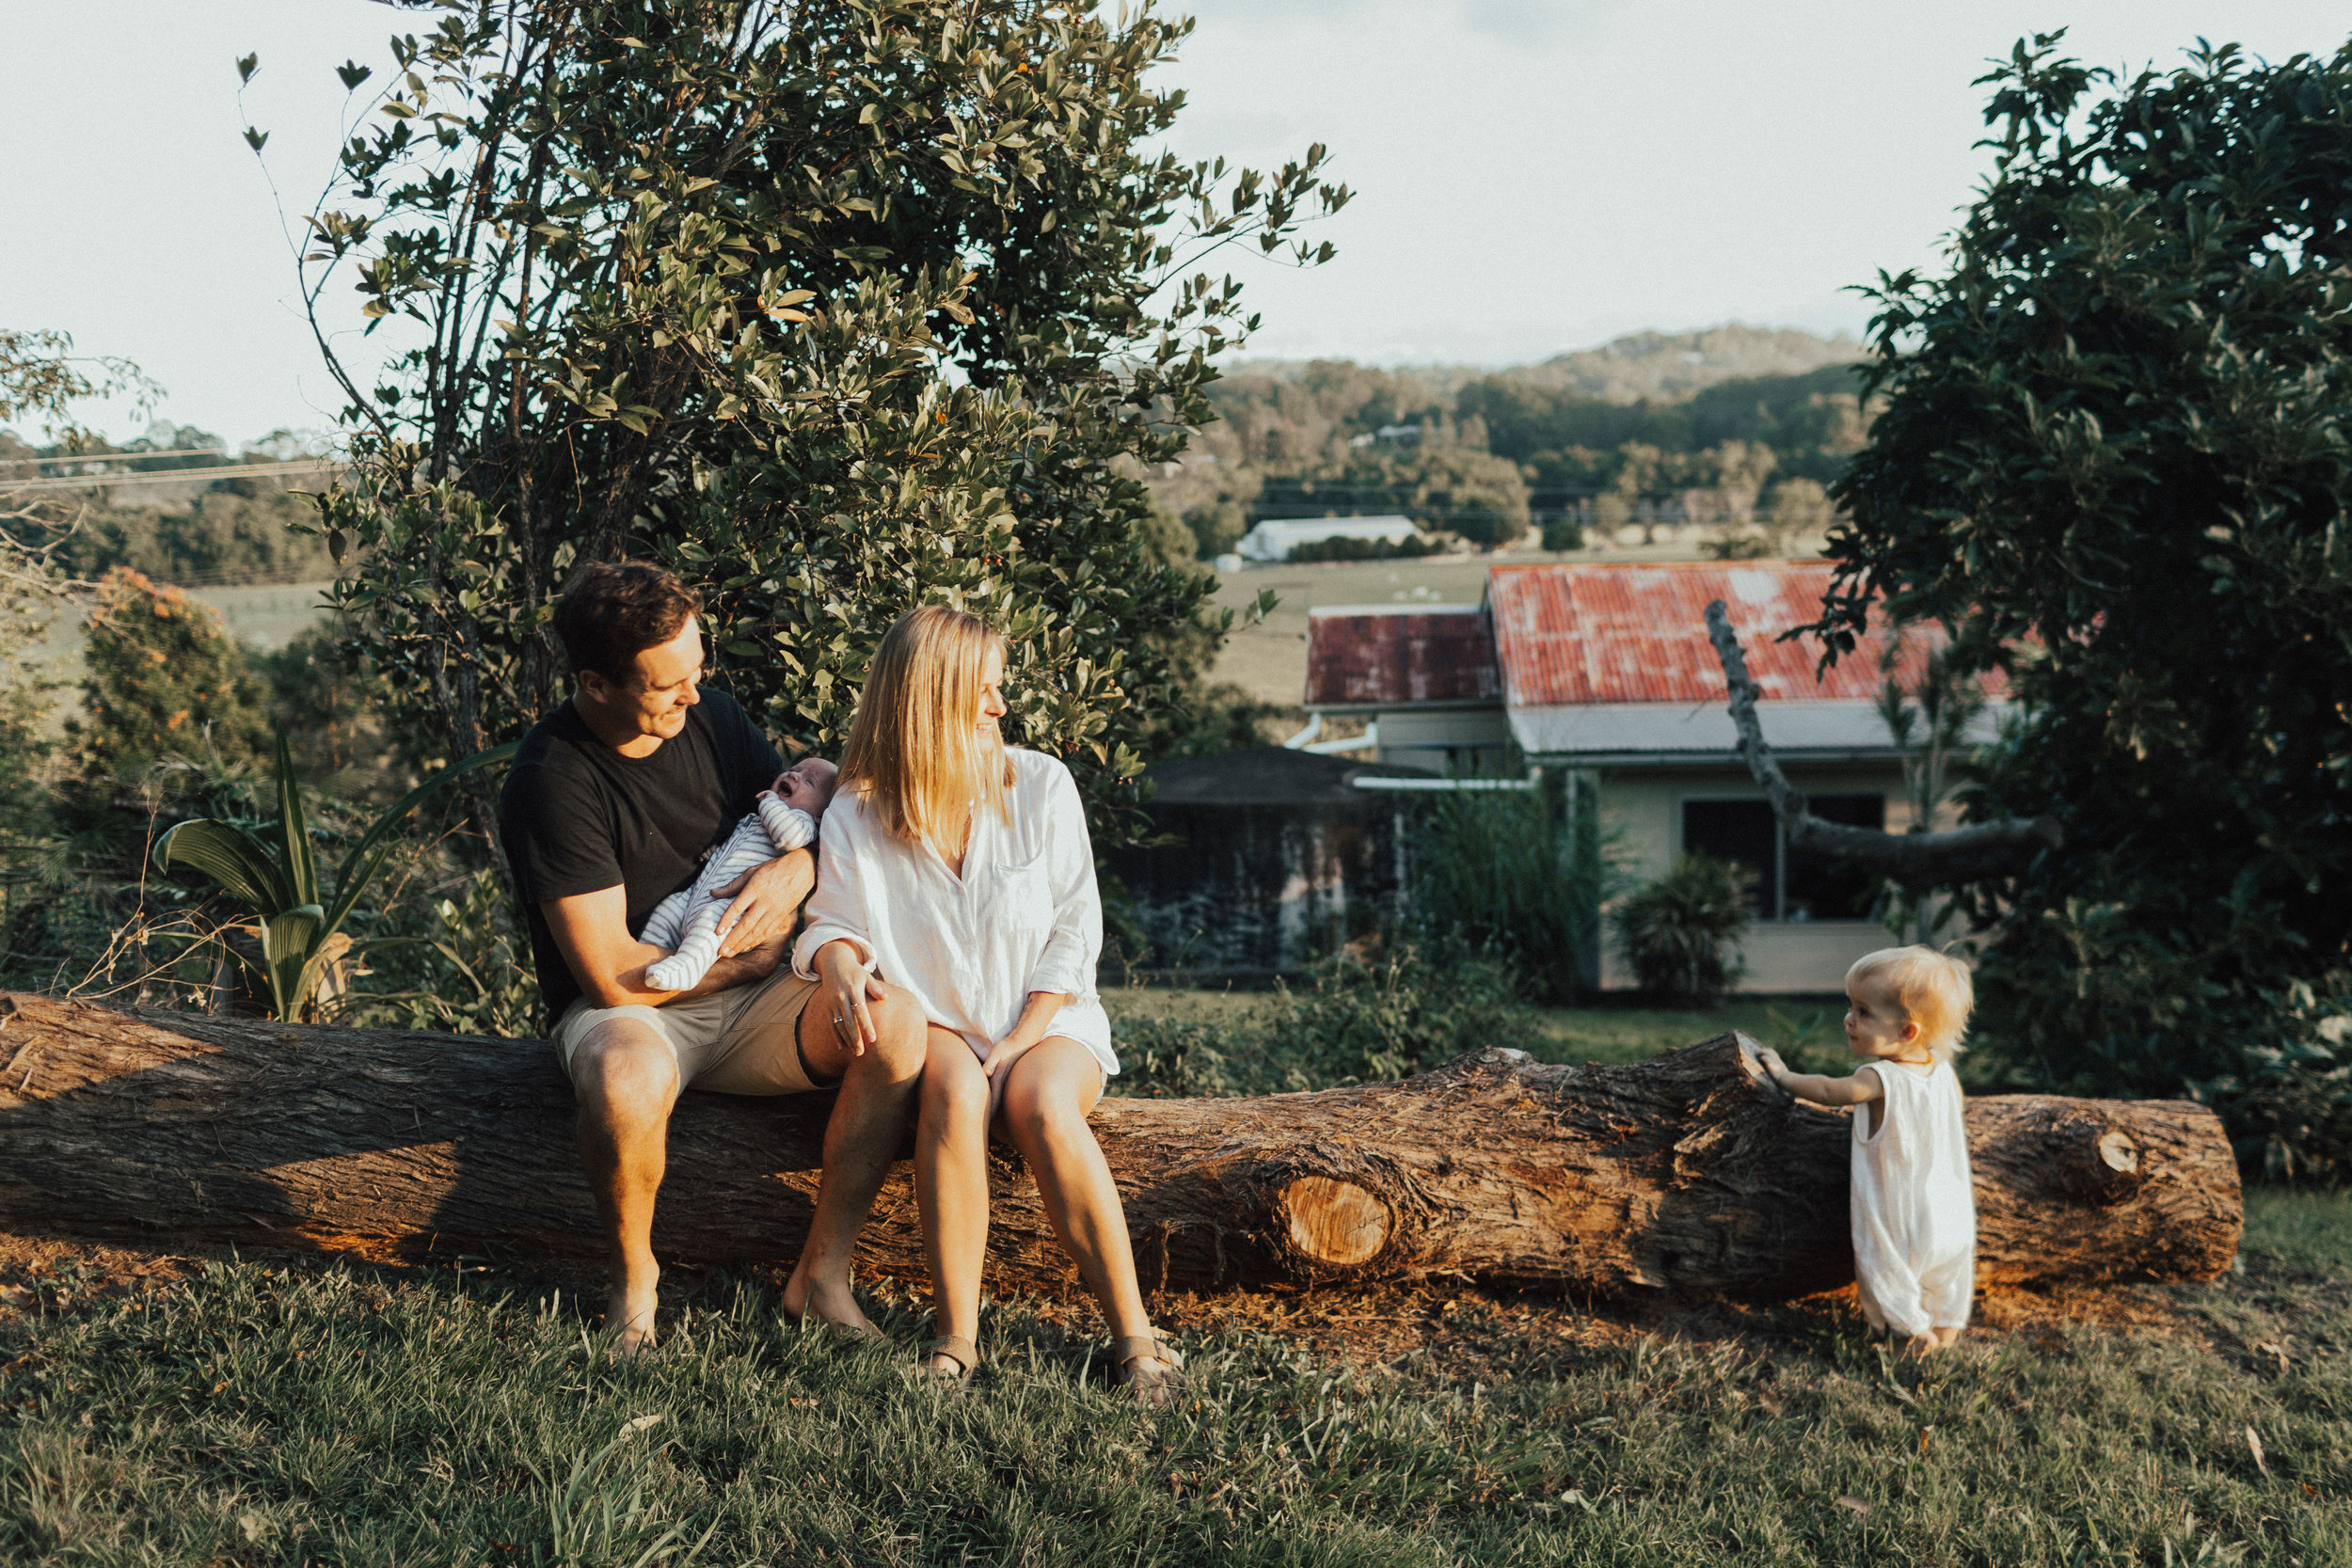 ourfamily-179.jpg